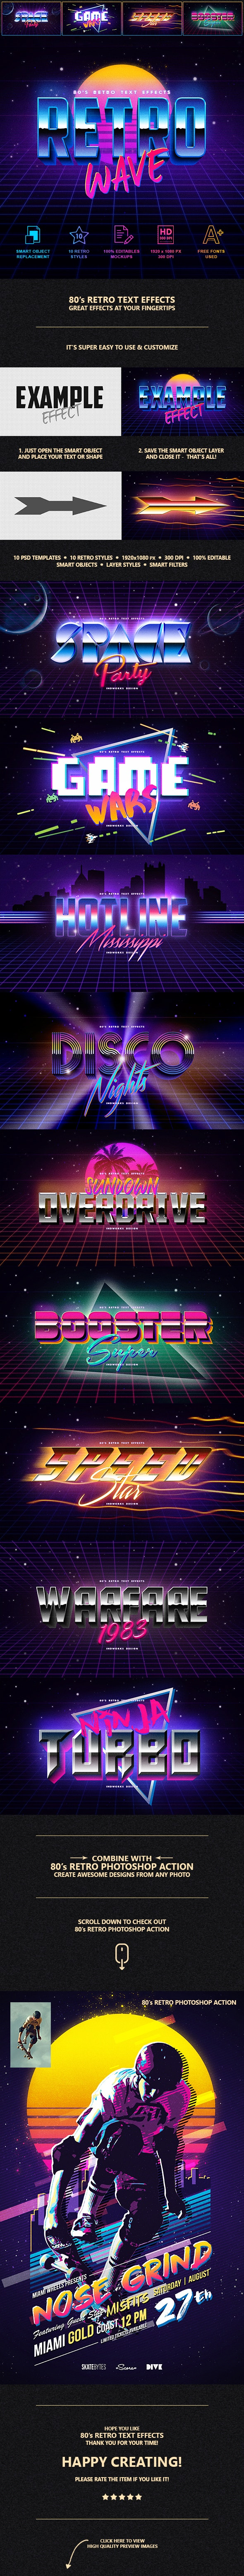 80's Retro Text Effects - Text Effects Actions